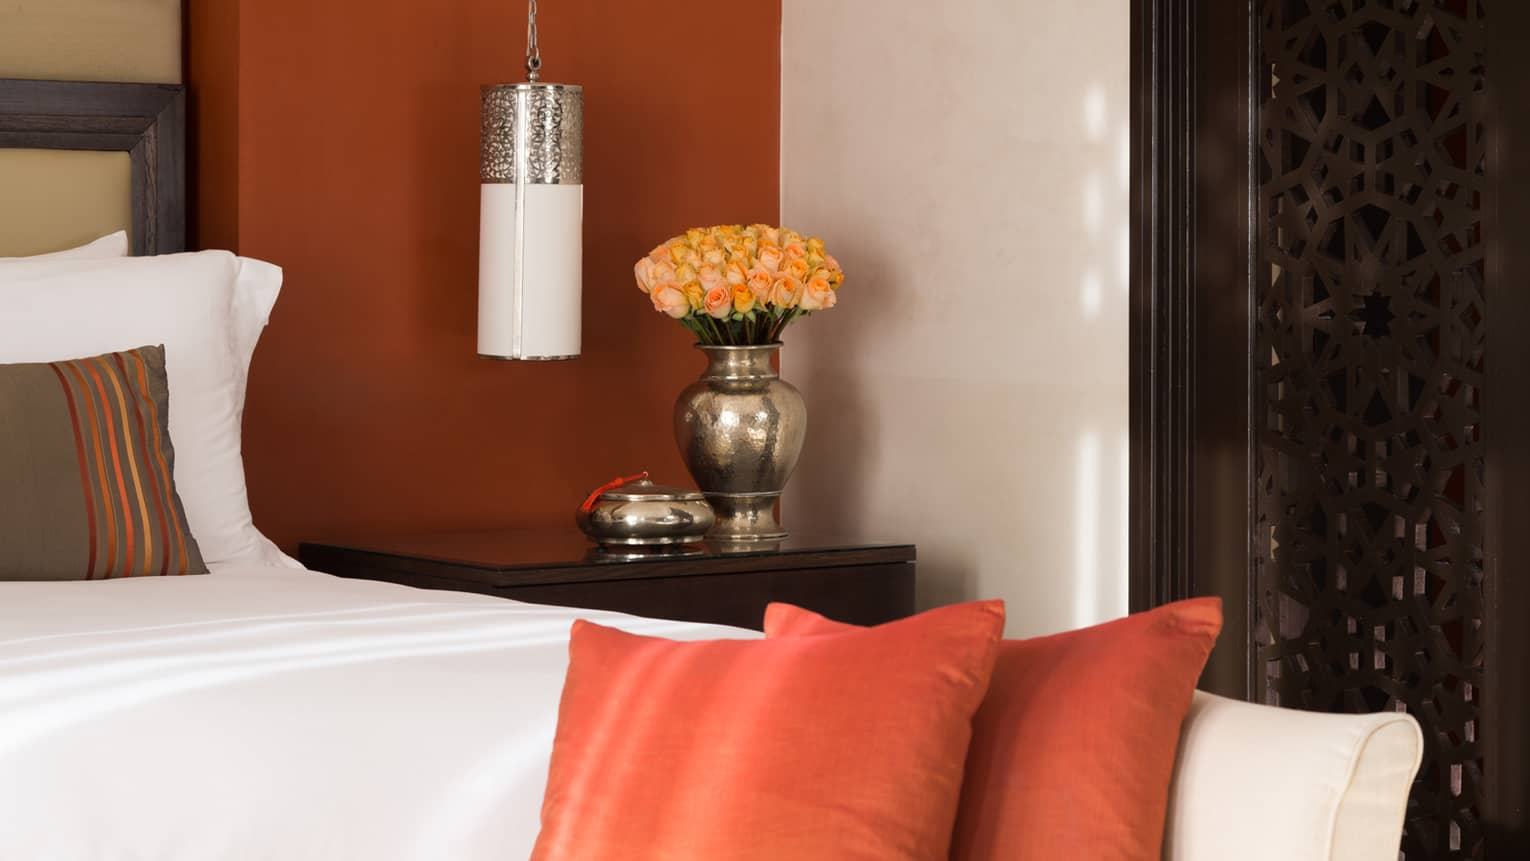 Close-up of hotel bed with orange and brown accent pillows, deep orange wall with white reading lamp